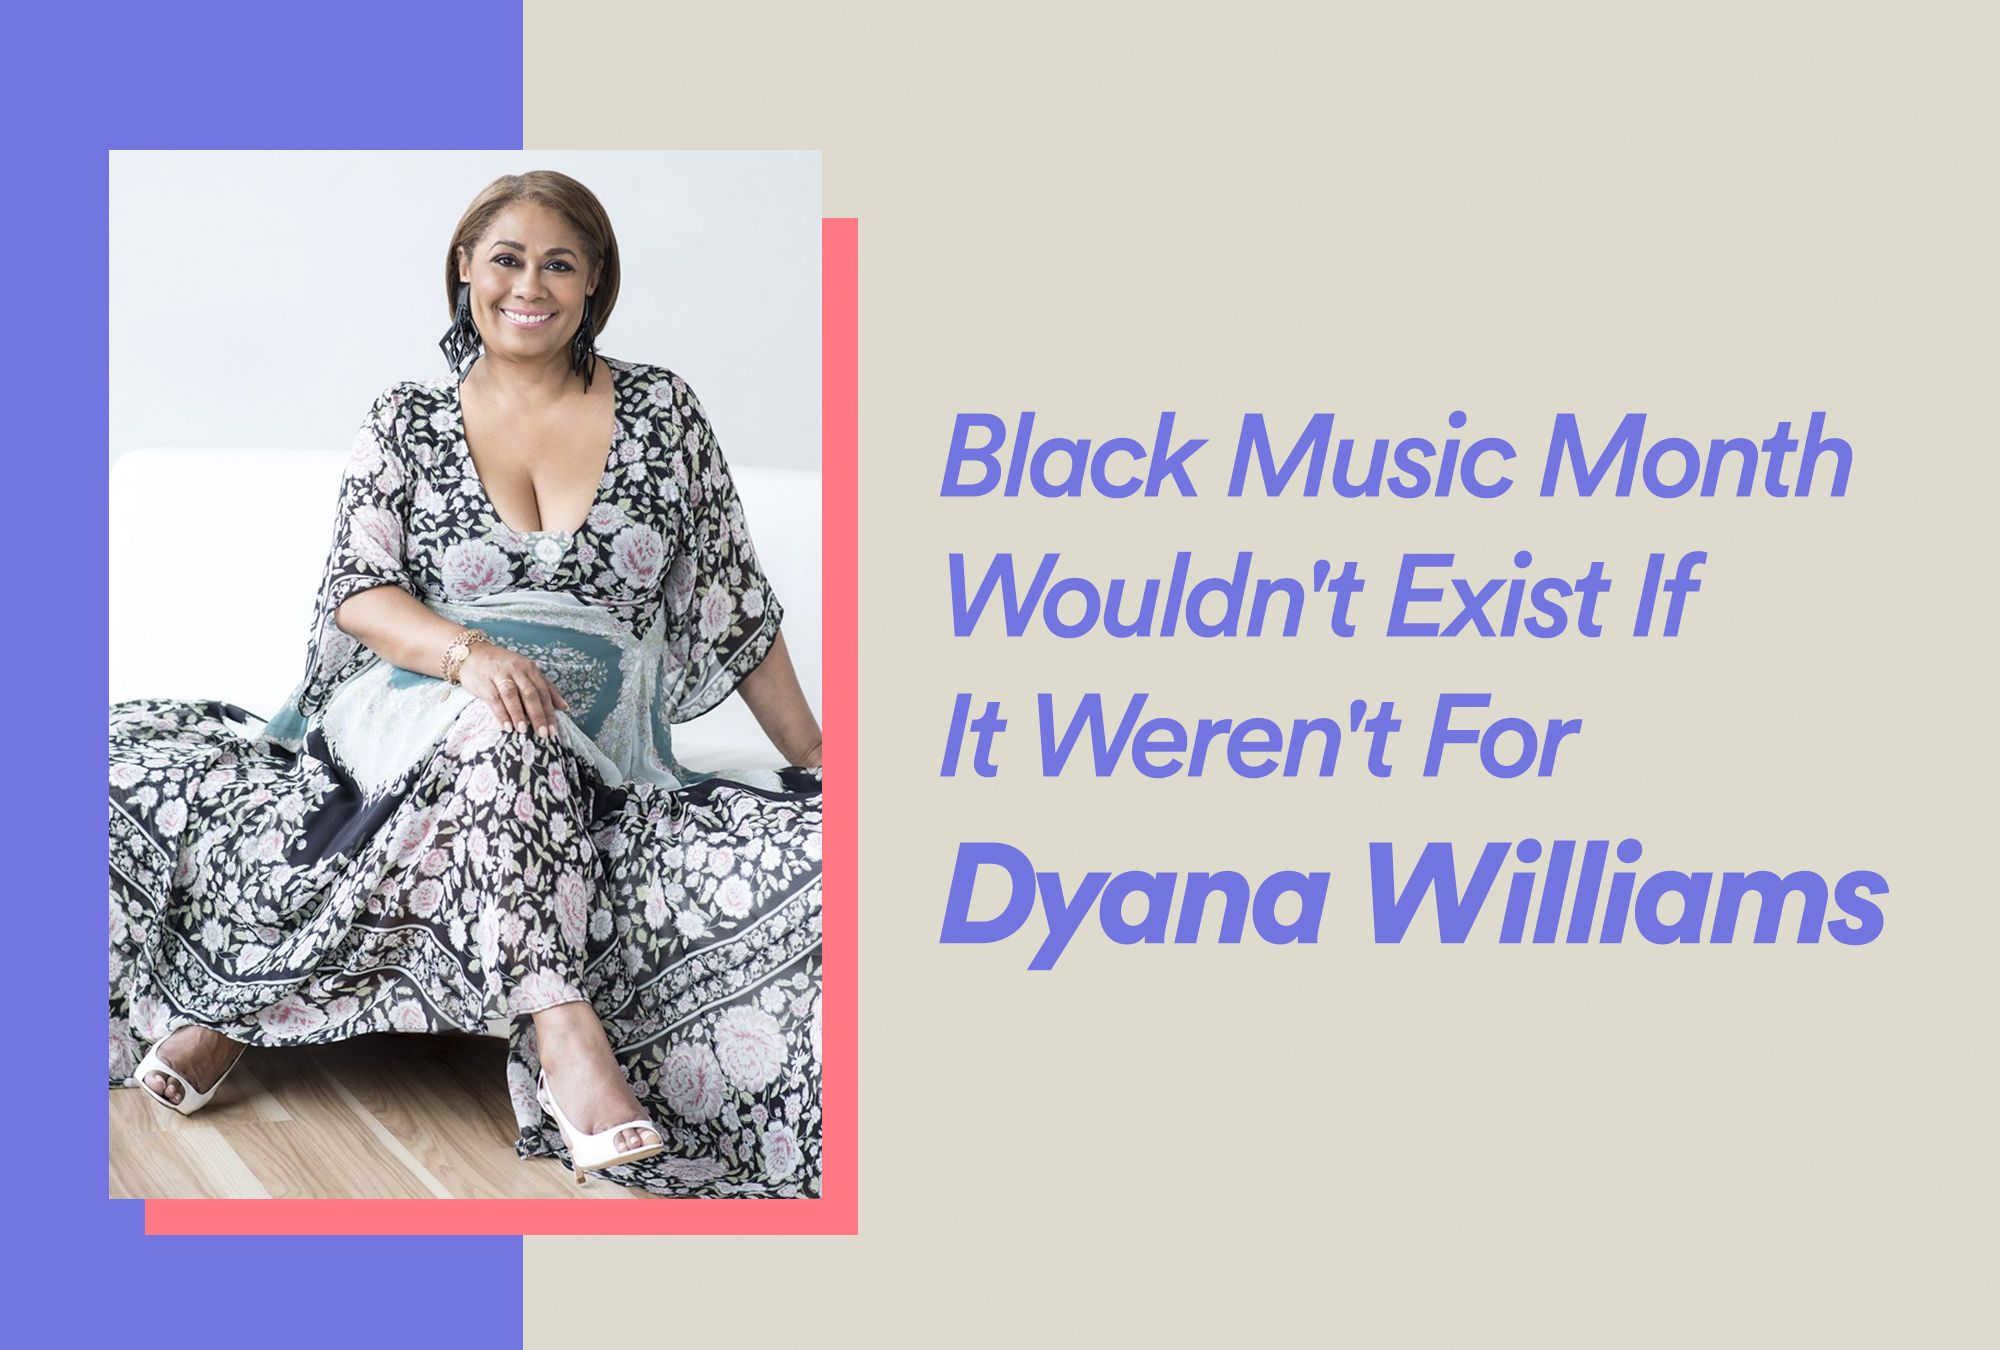 Black Music Month Wouldn't Exist If It Weren't For Dyana Williams